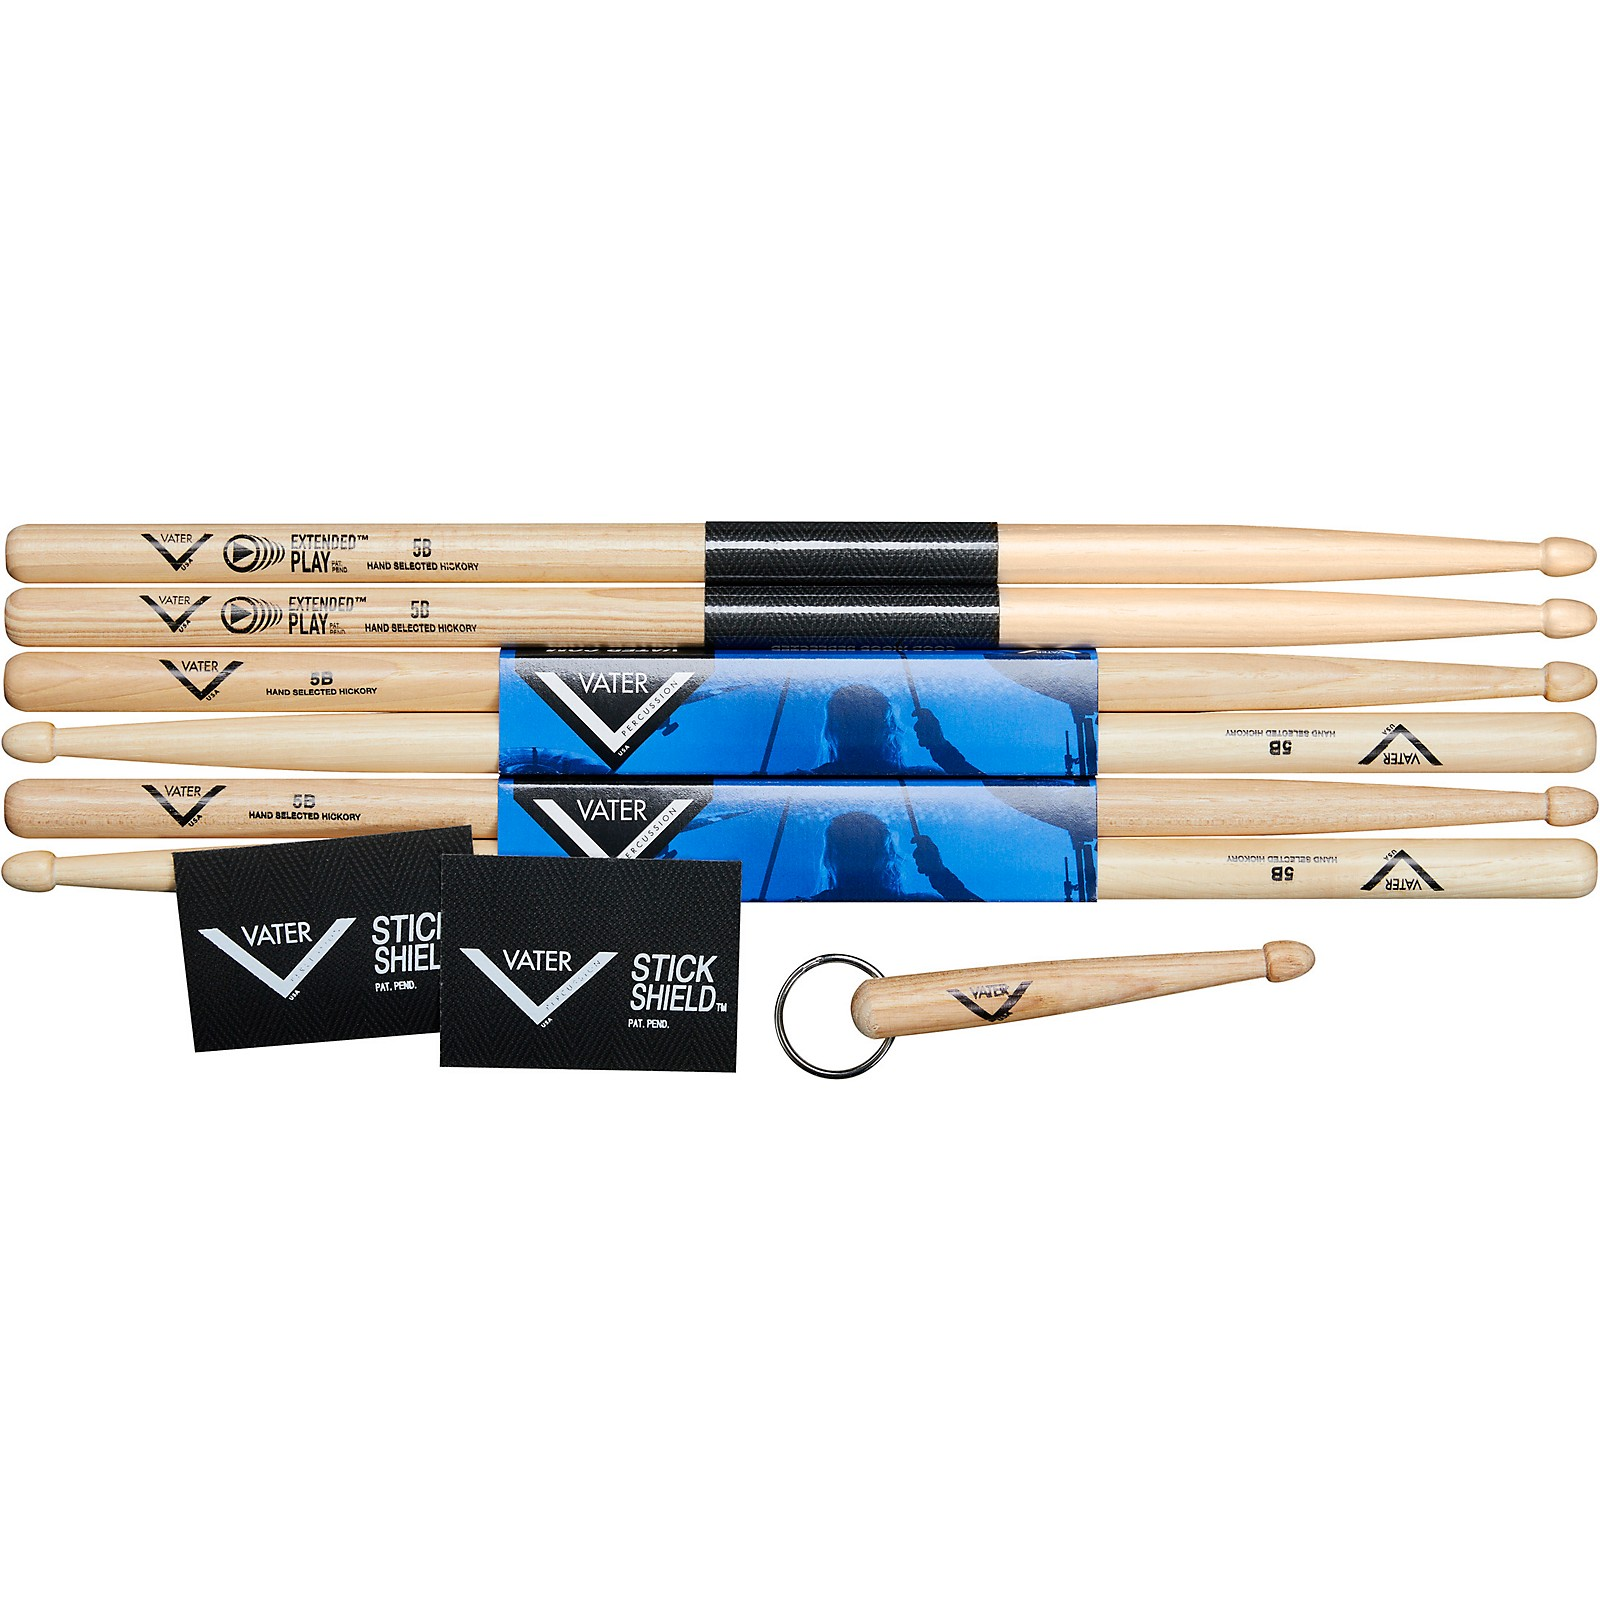 Vater Buy 2 Pairs Vater 5B wood and 1 Pair Vater Extended Play 5B Wood, get 1 free pair of Vater Stick Shield and 1 Vater Keychain